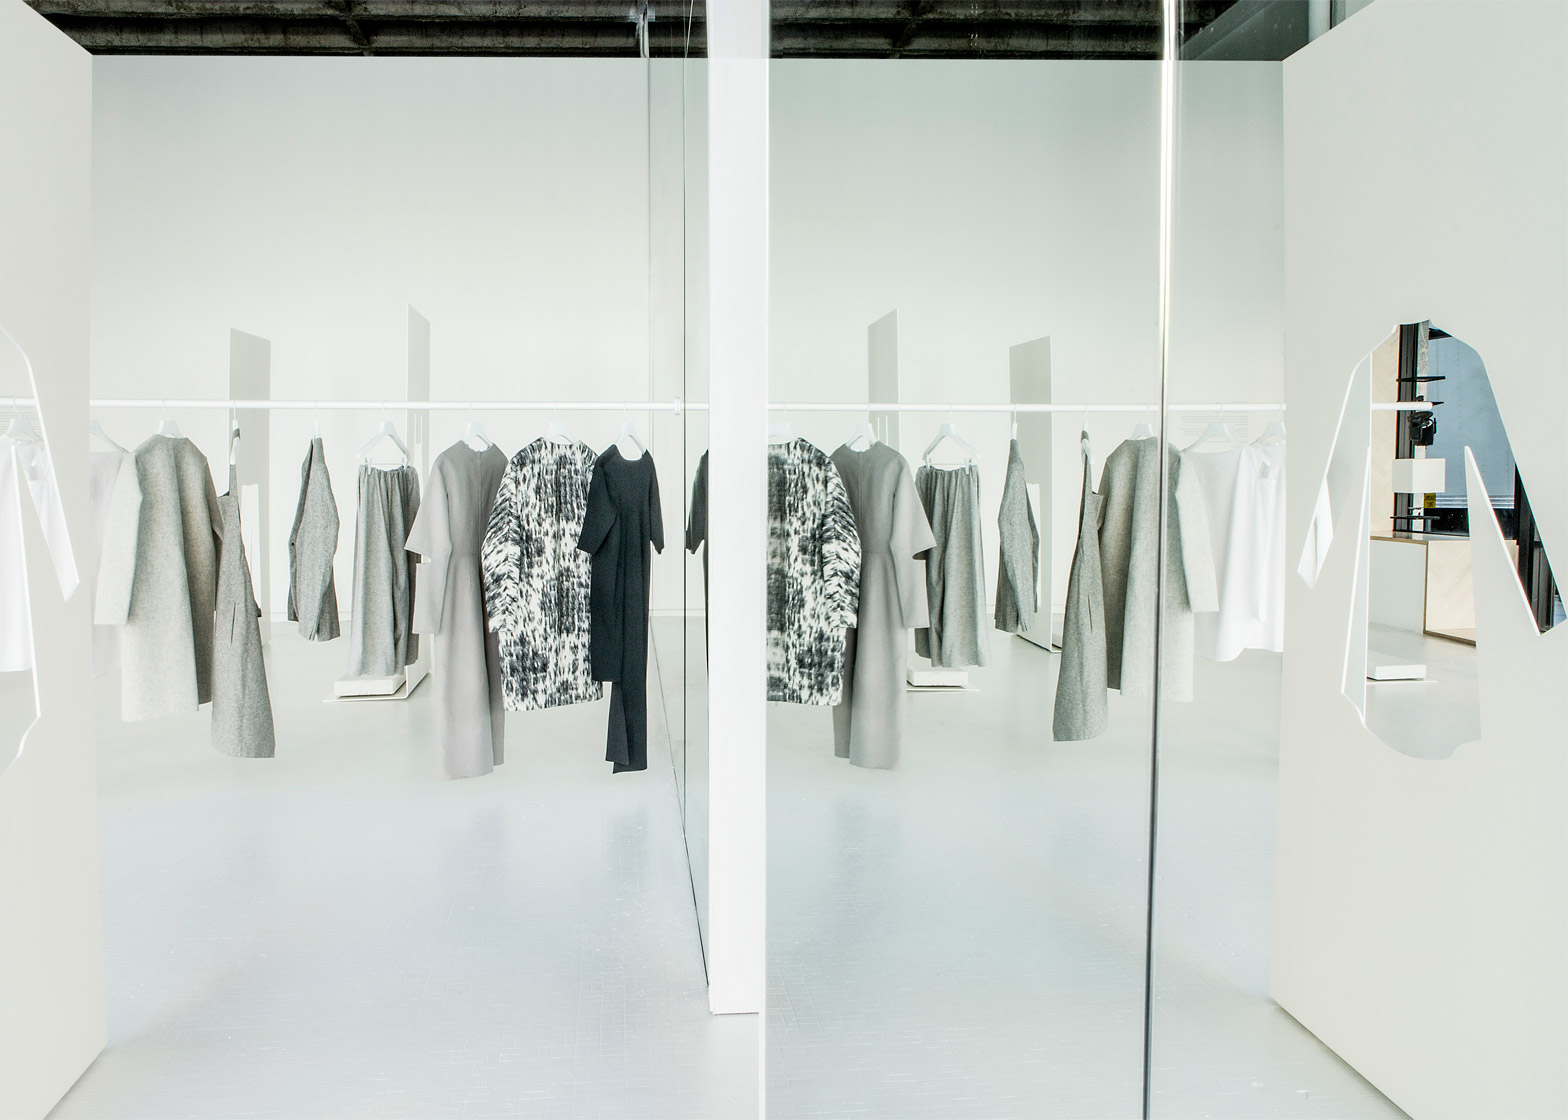 aa71c5c9afaa Snarkitecture uses steel and mirrors for COS pop-up store